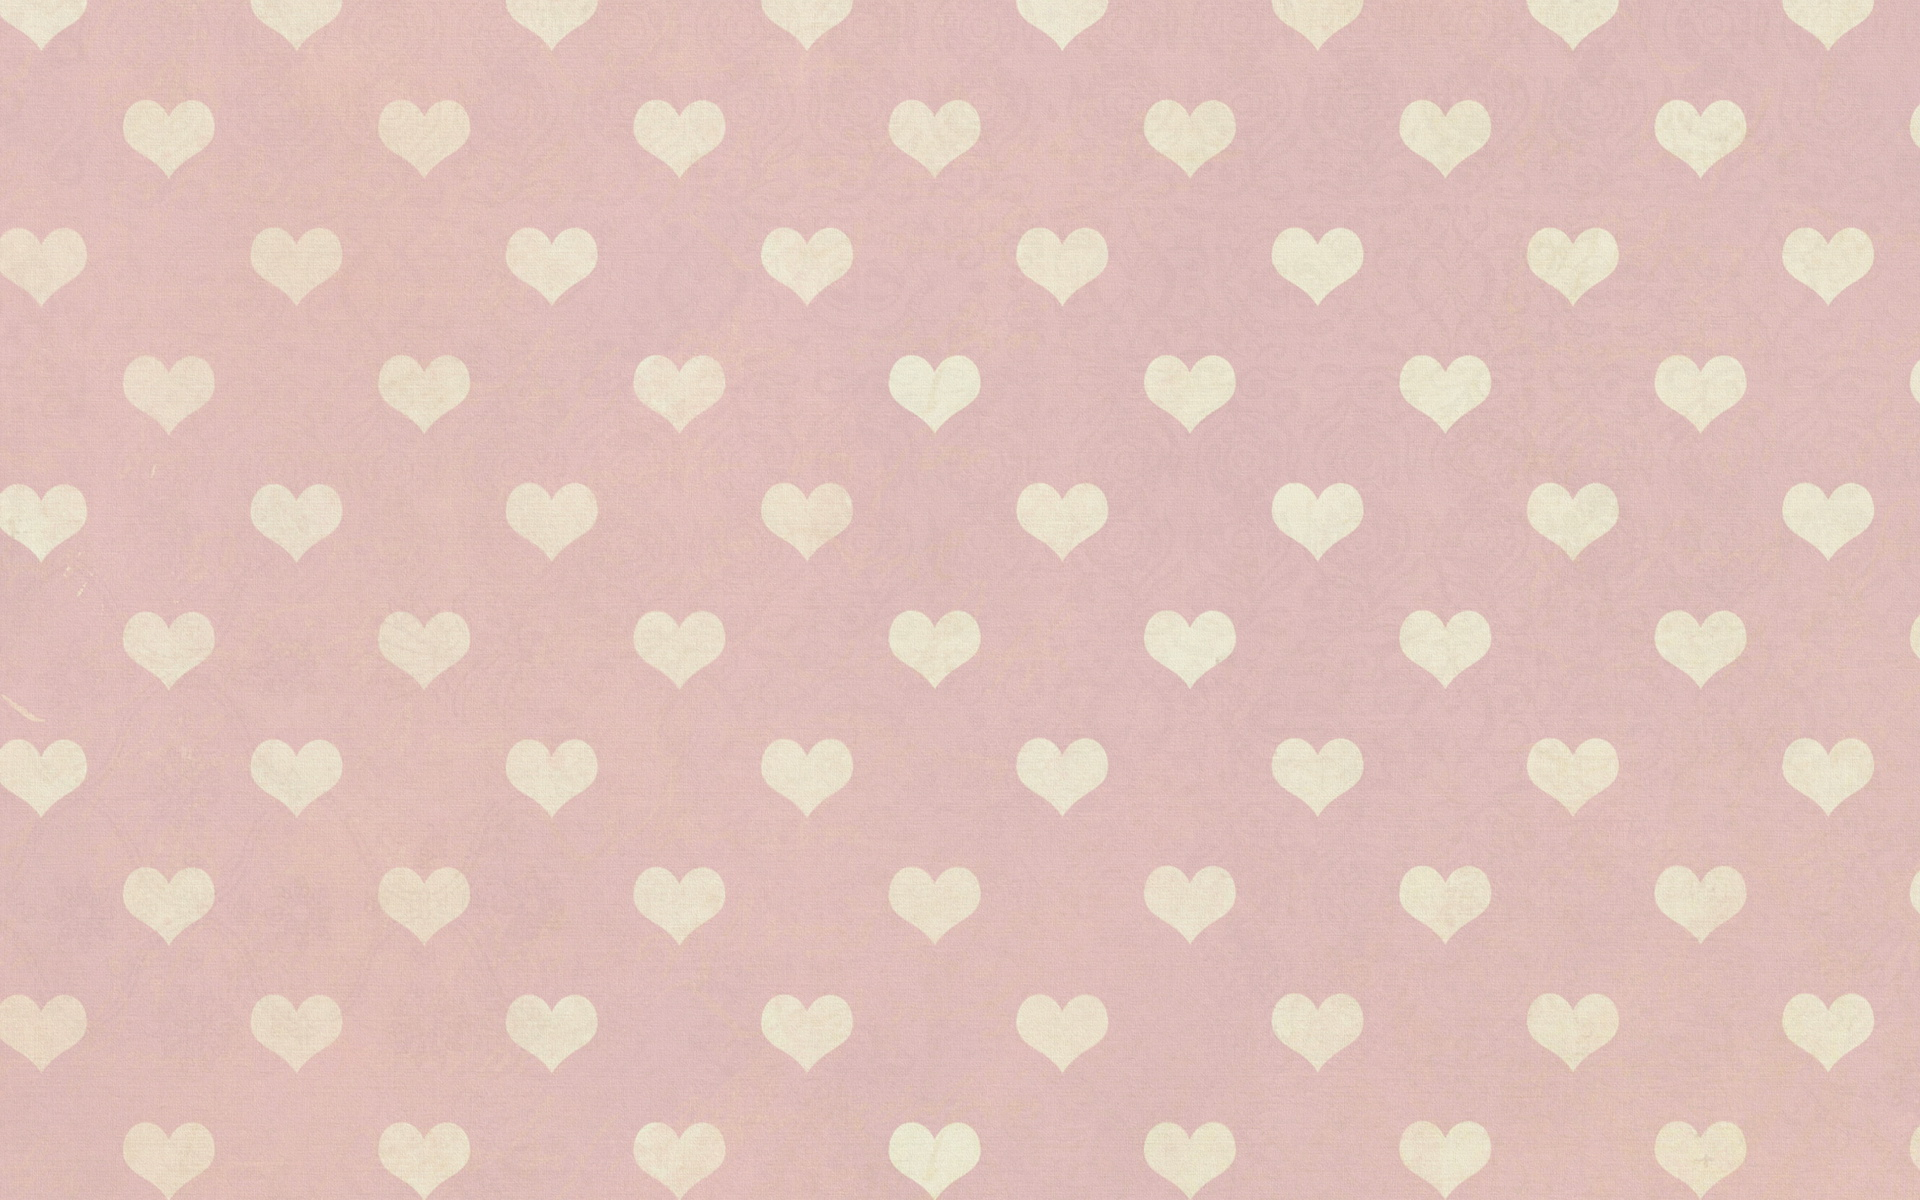 Free Heart Pattern Wallpaper